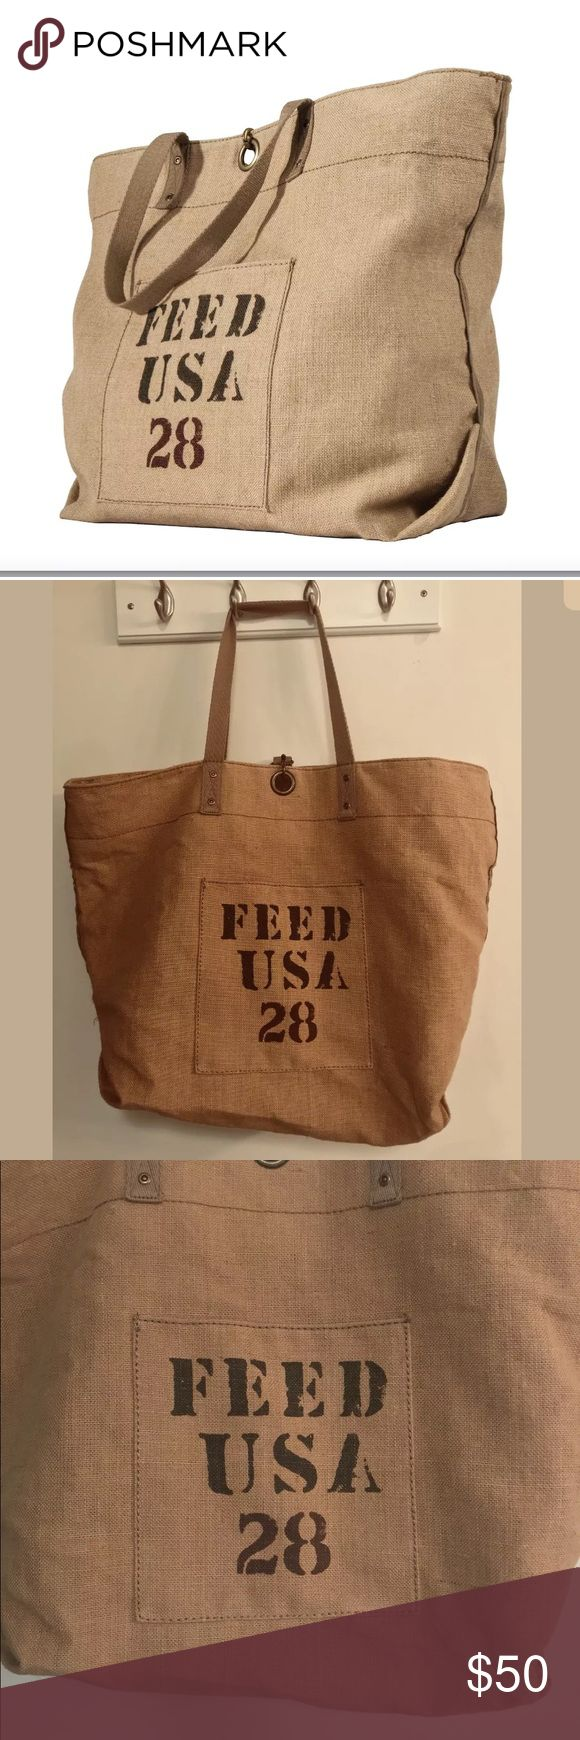 Large tote bags at target - Feed Usa Giant Tote Bag